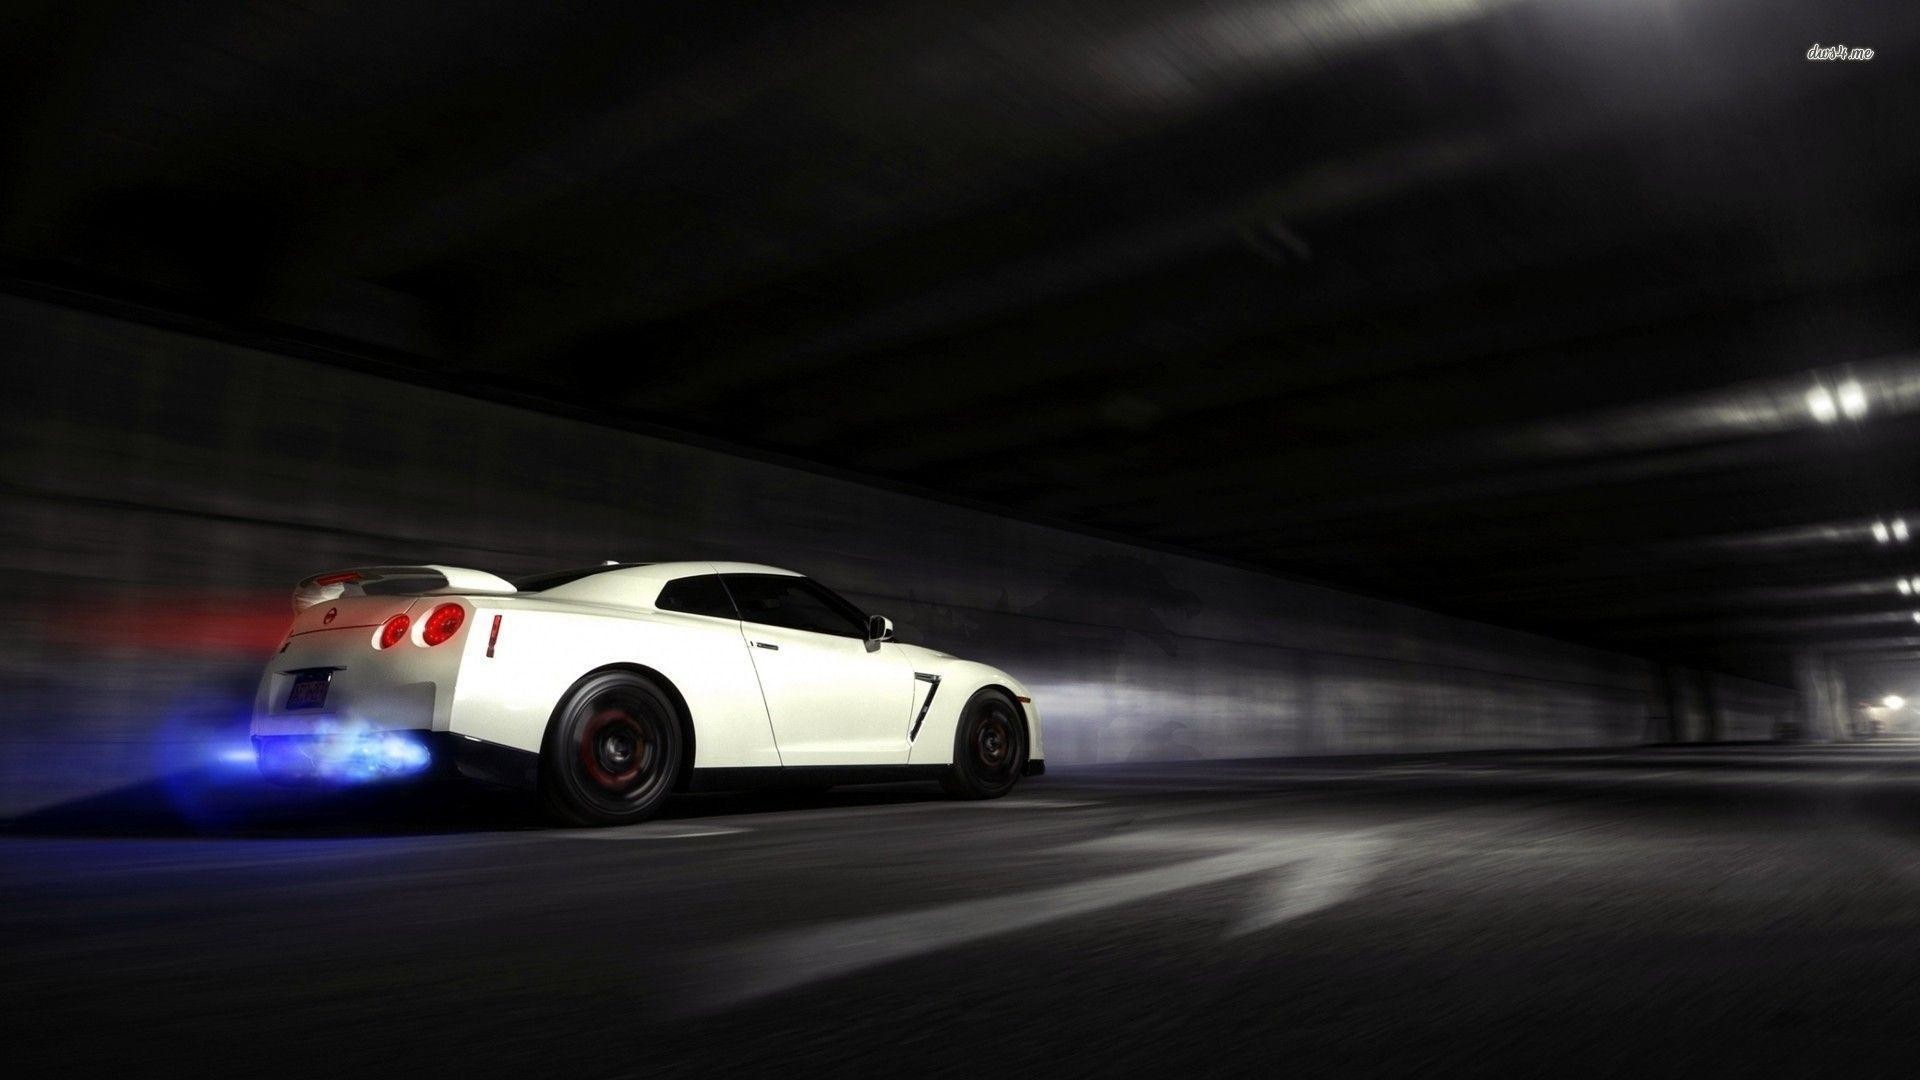 1920x1080 Nissan Skyline GT-R wallpaper - Car wallpapers - #